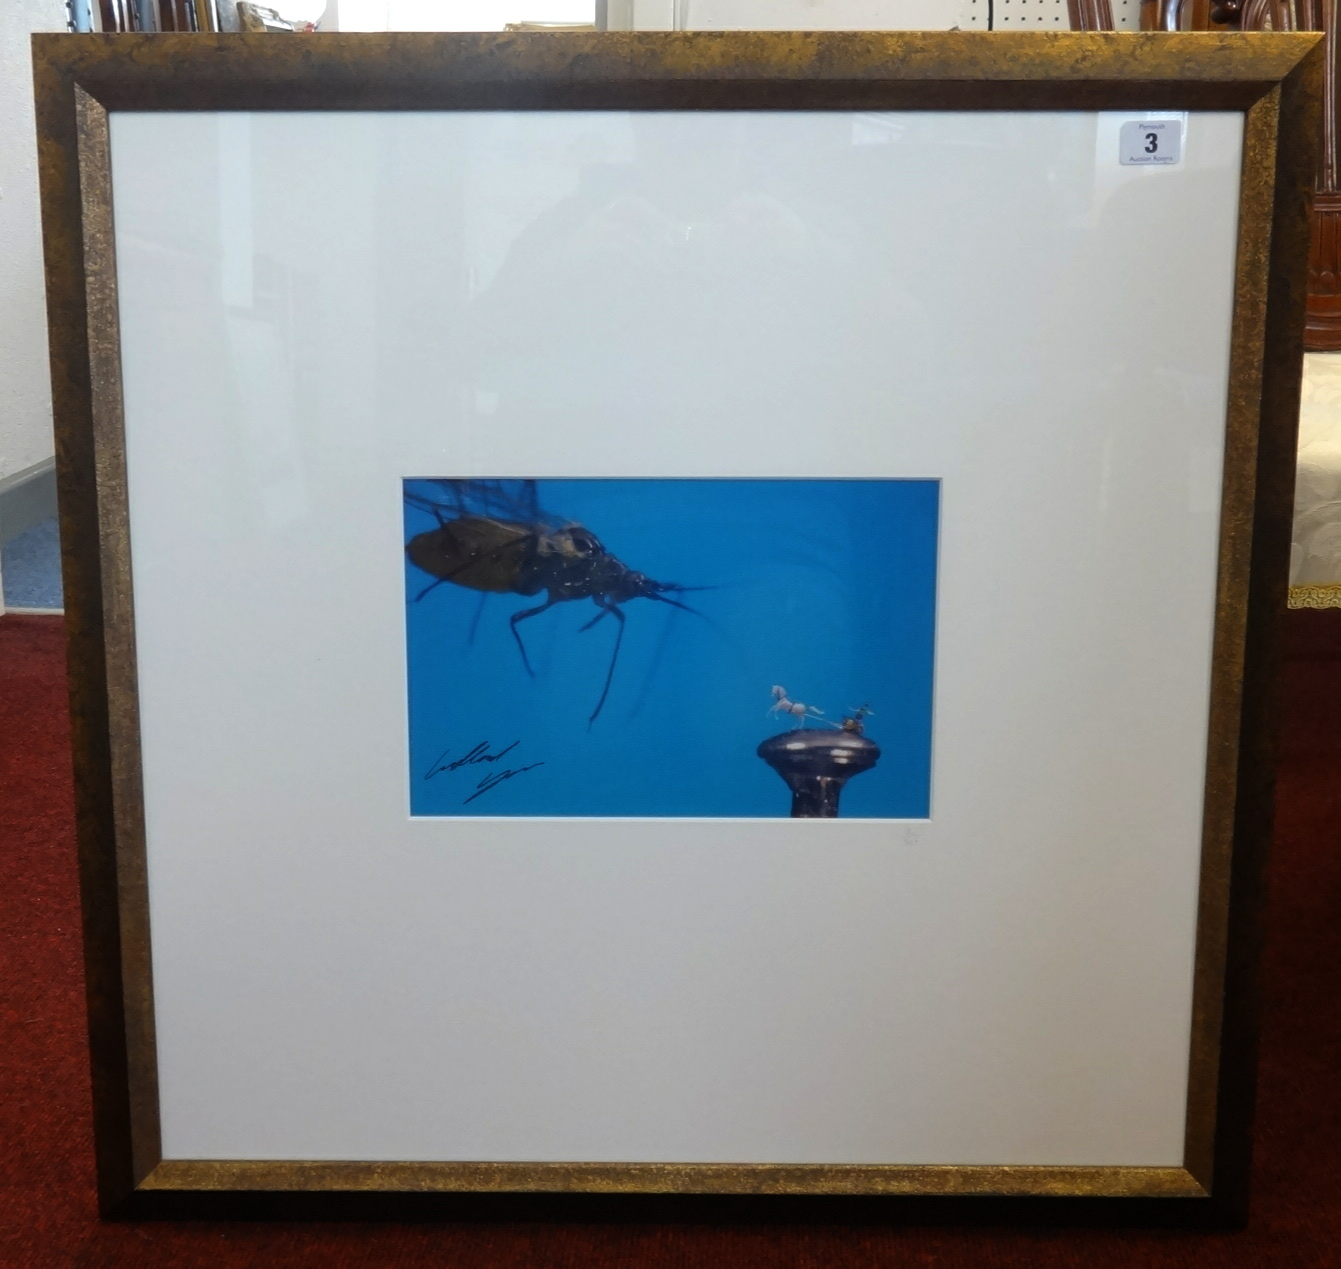 Lot 003 - Willard Wigan MBE b 1957, 'The Chariot', giclee print circa 2008, No.2/50, exhibited Plymouth